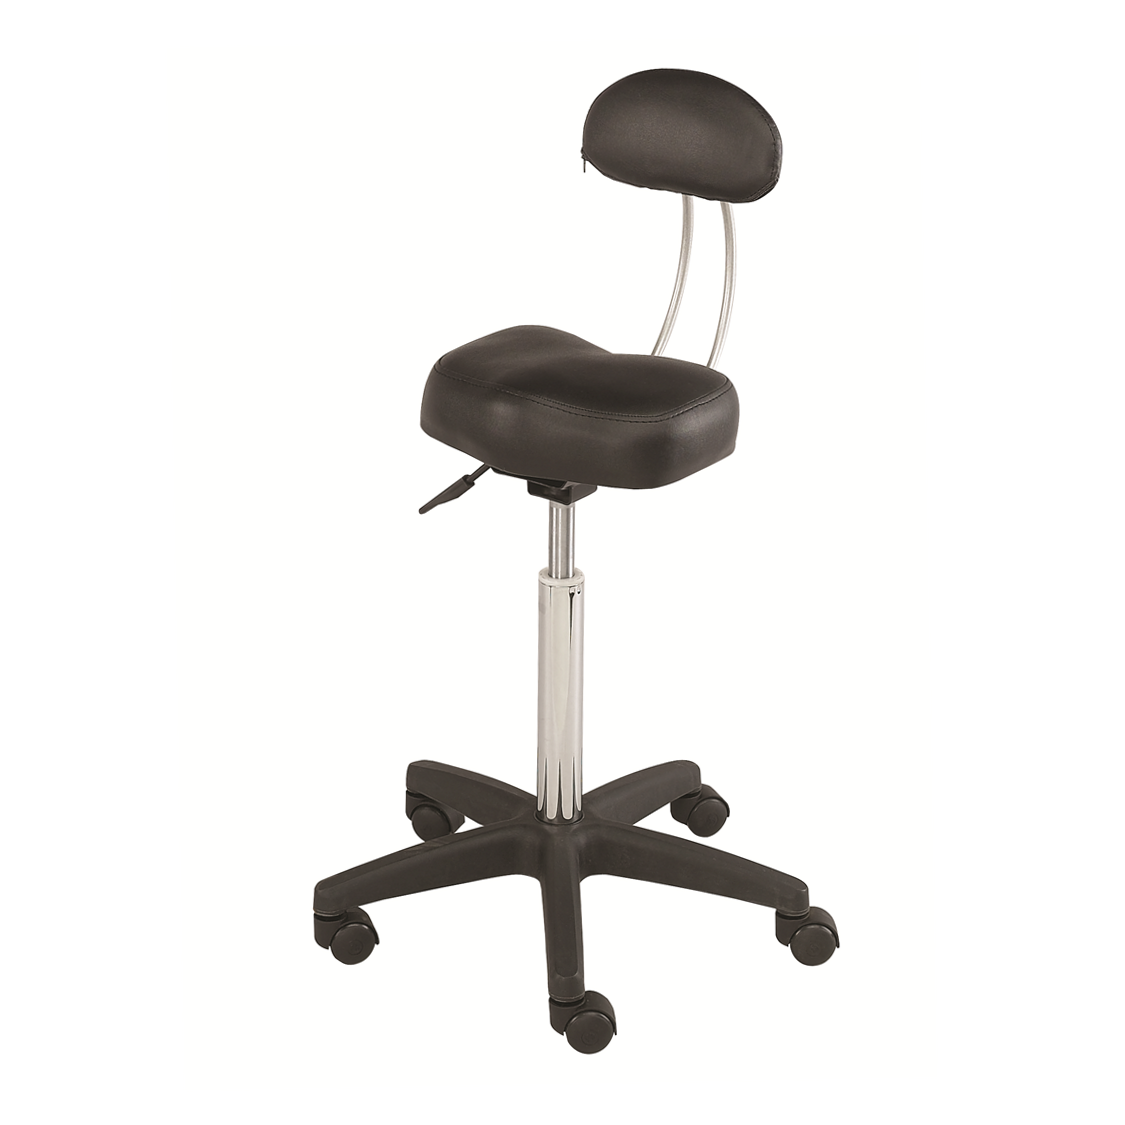 Kotian Task Stools - Garfield Commercial Enterprises Salon Equipment Spa Furniture Barber Chair Luxury